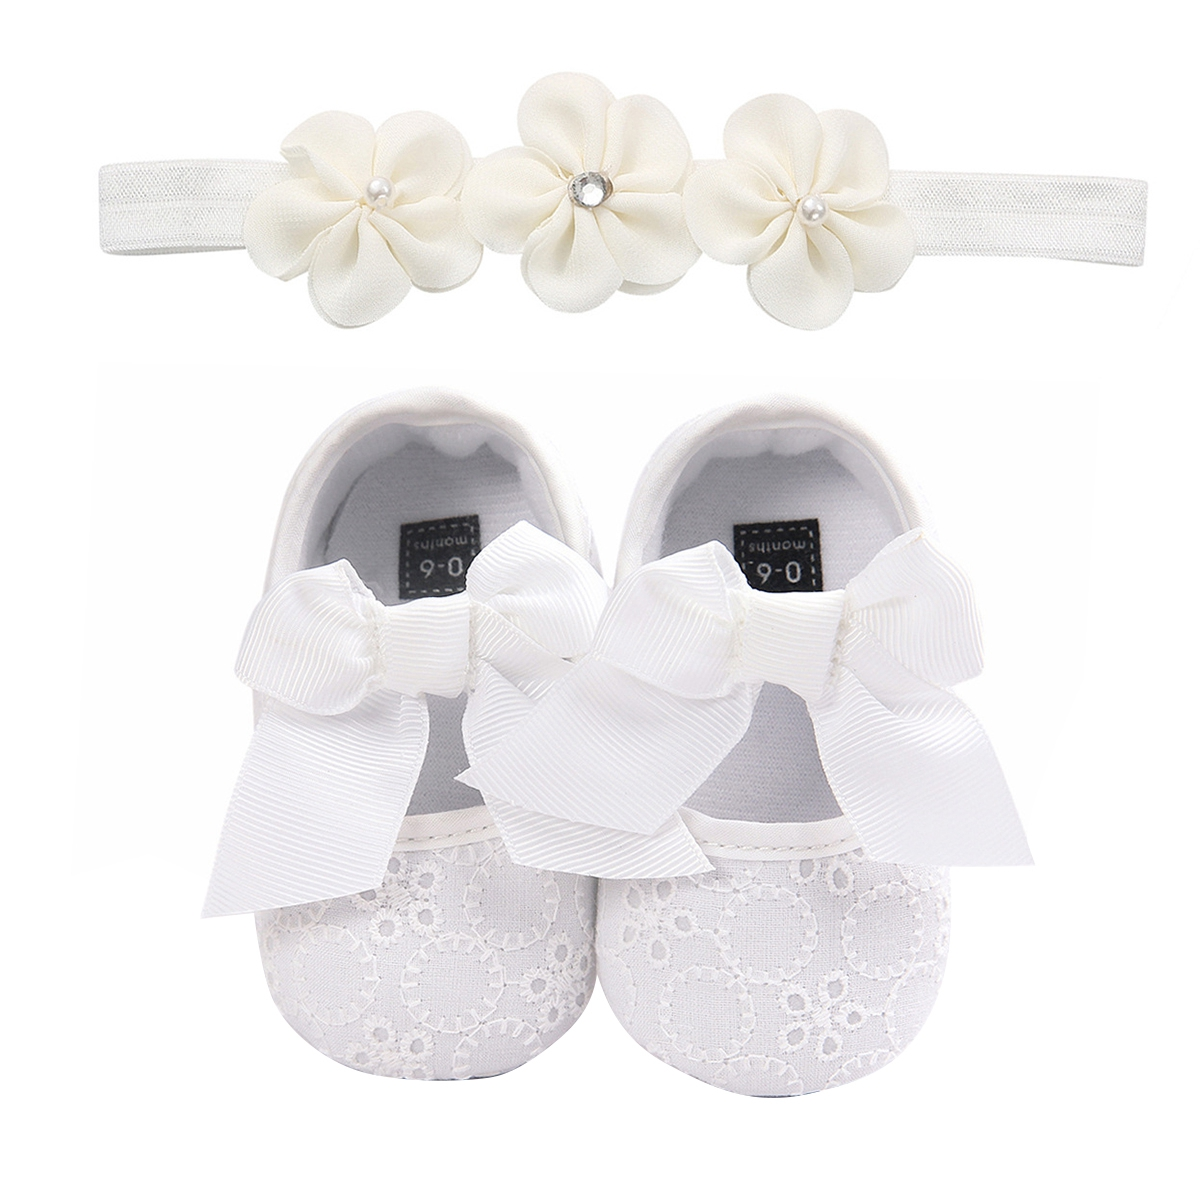 White and pink Shoes for Baby,baby shoes,newborn baby girl set,shoes/&headbands,baby gift girl Baby Shoes,baby headbands,For 0-6 Month Baby